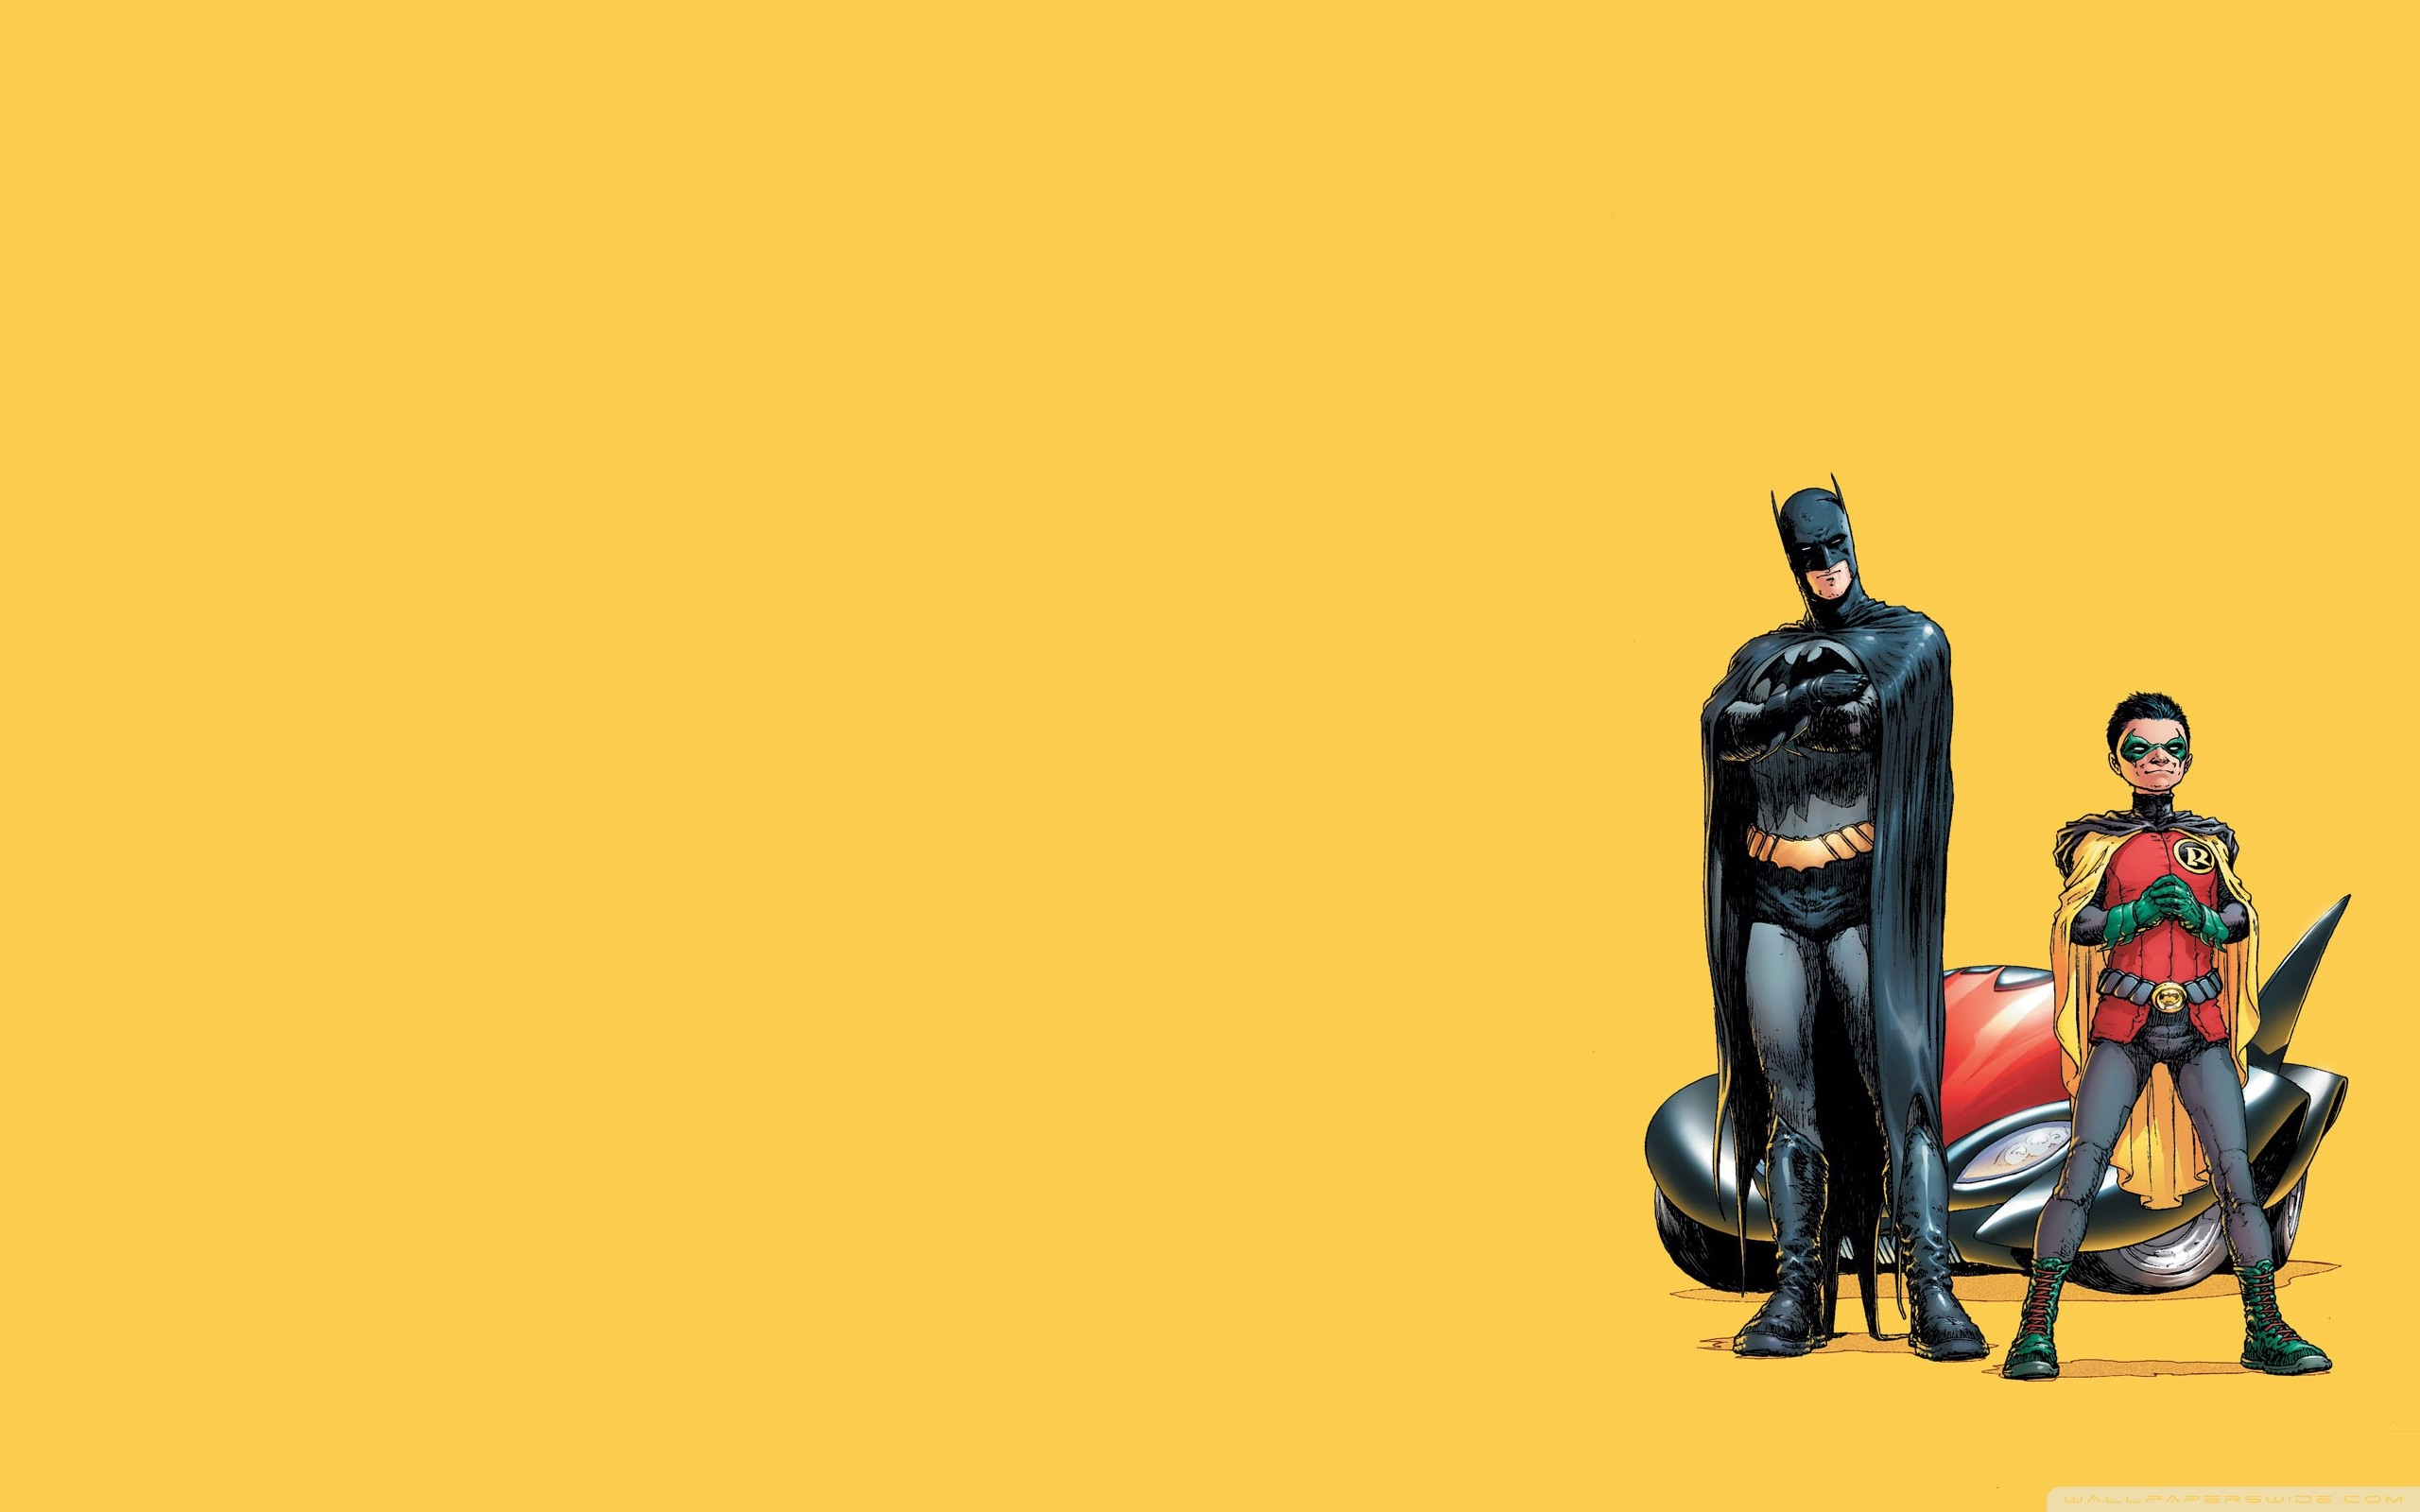 2560x1600 batman and robin Computer Wallpapers, Desktop Backgrounds |  .